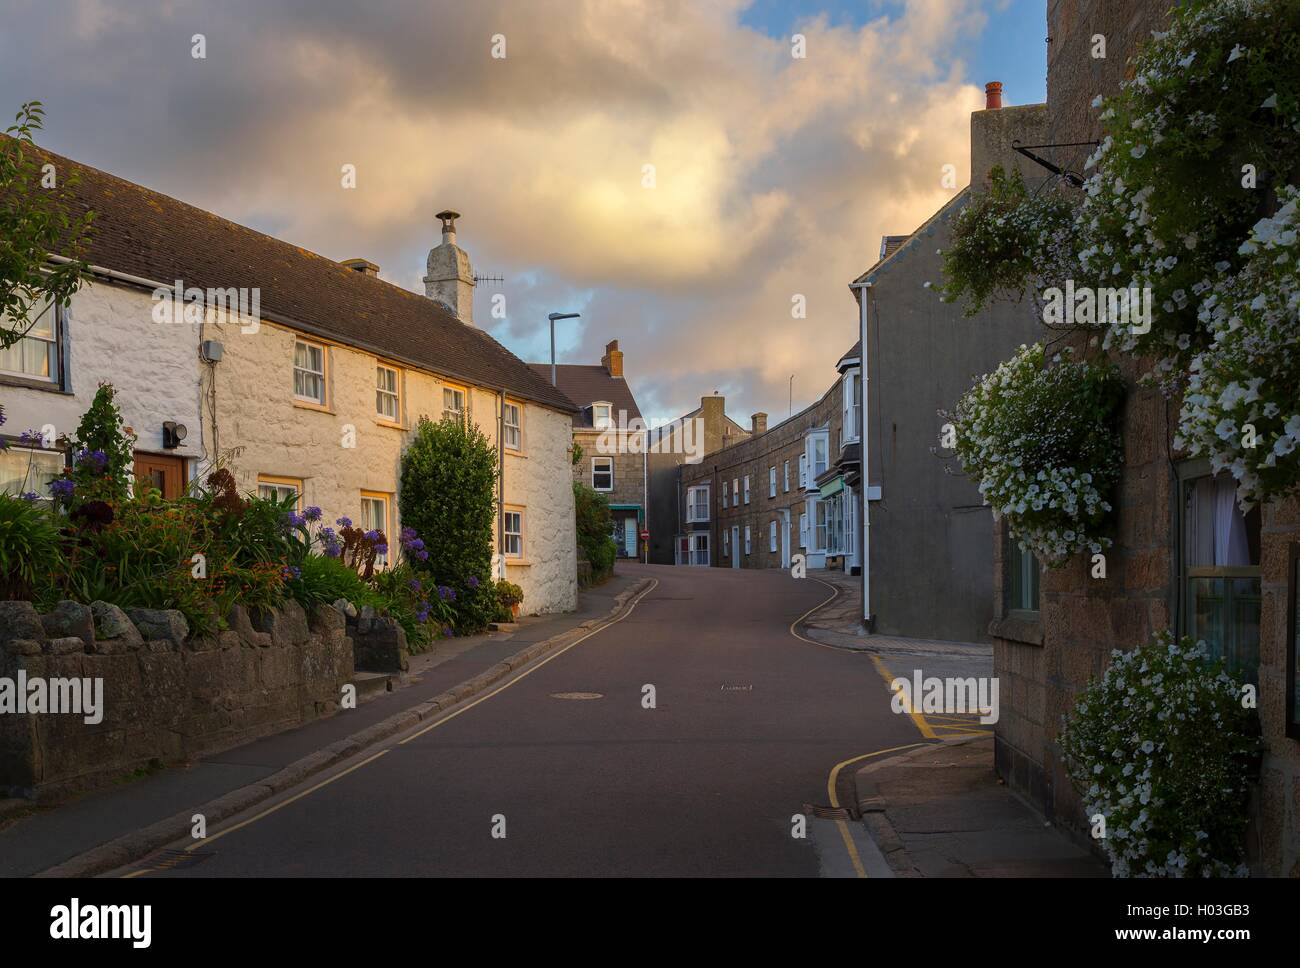 Hugh Town, St Mary's, Isles of Scilly, England - Stock Image